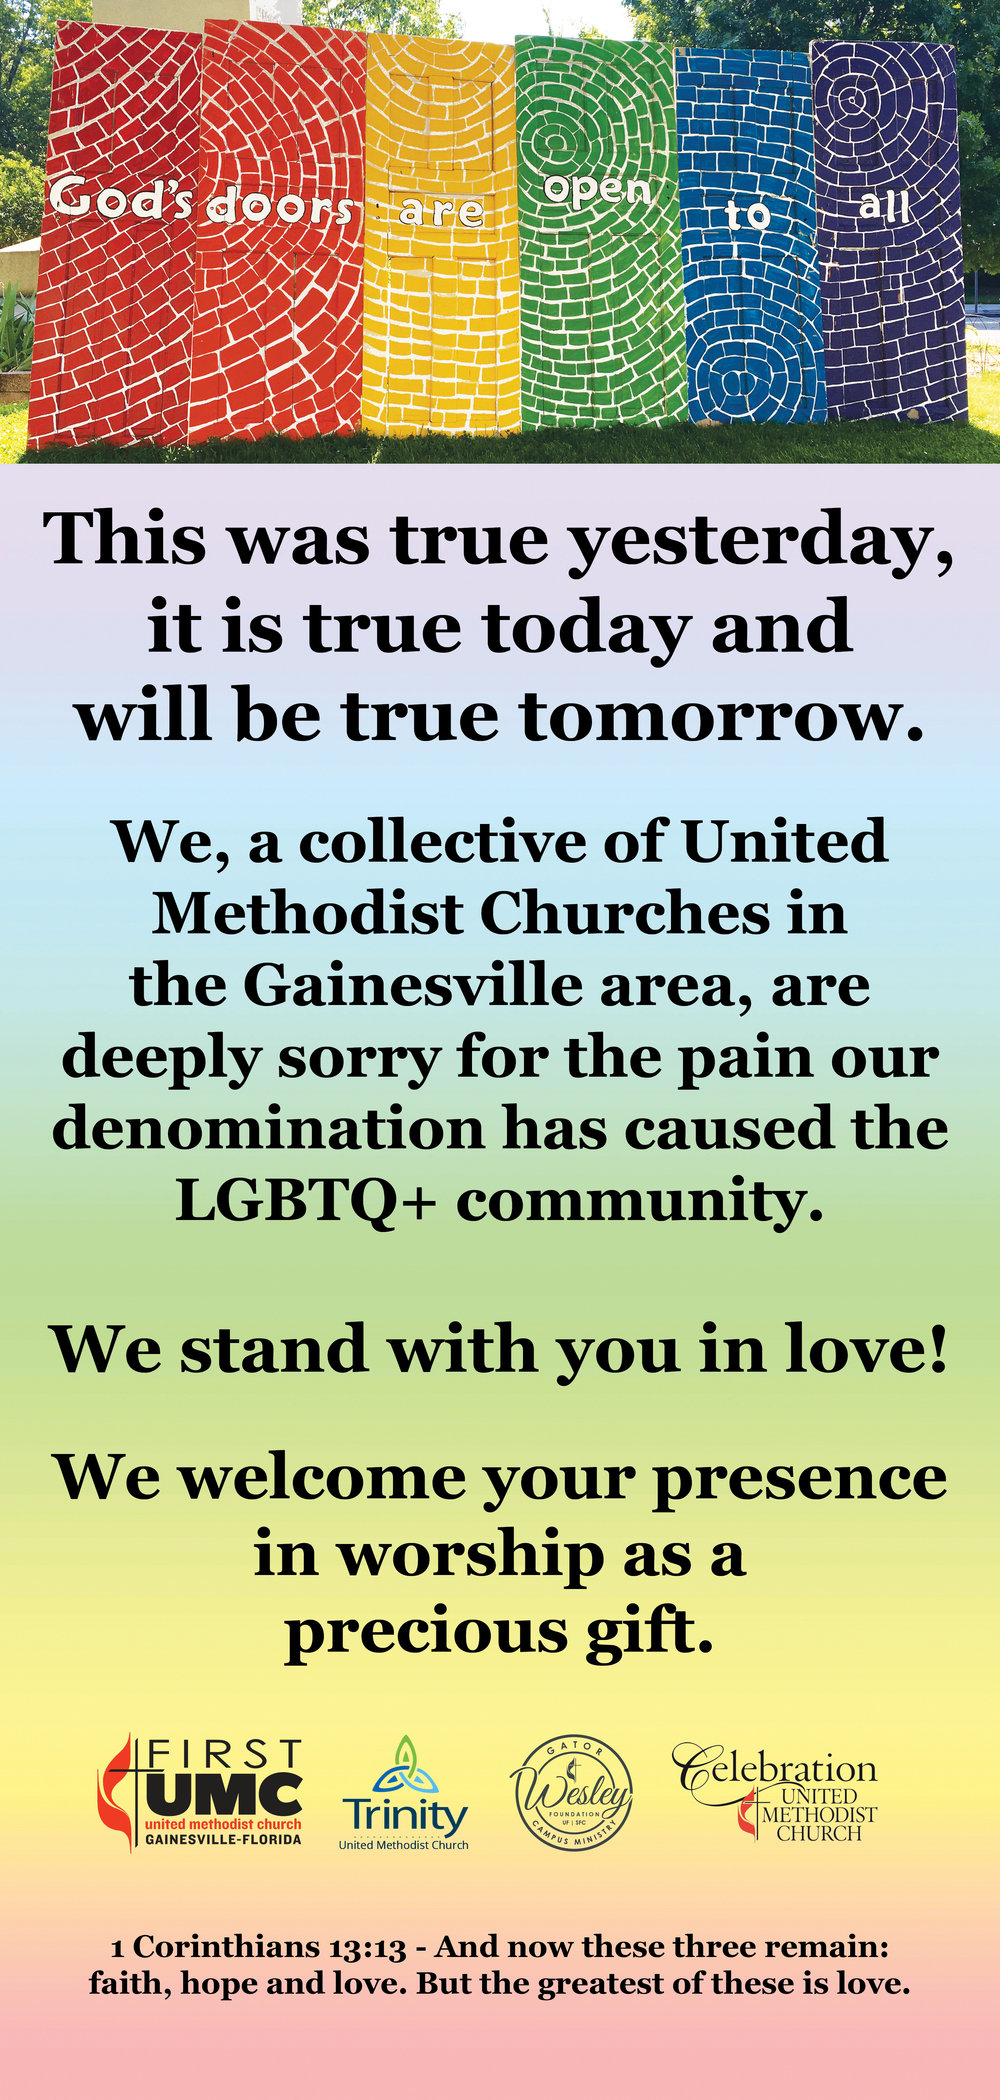 This statement of apology, welcome, and love will be run in Saturday's edition of the Gainesville Sun.